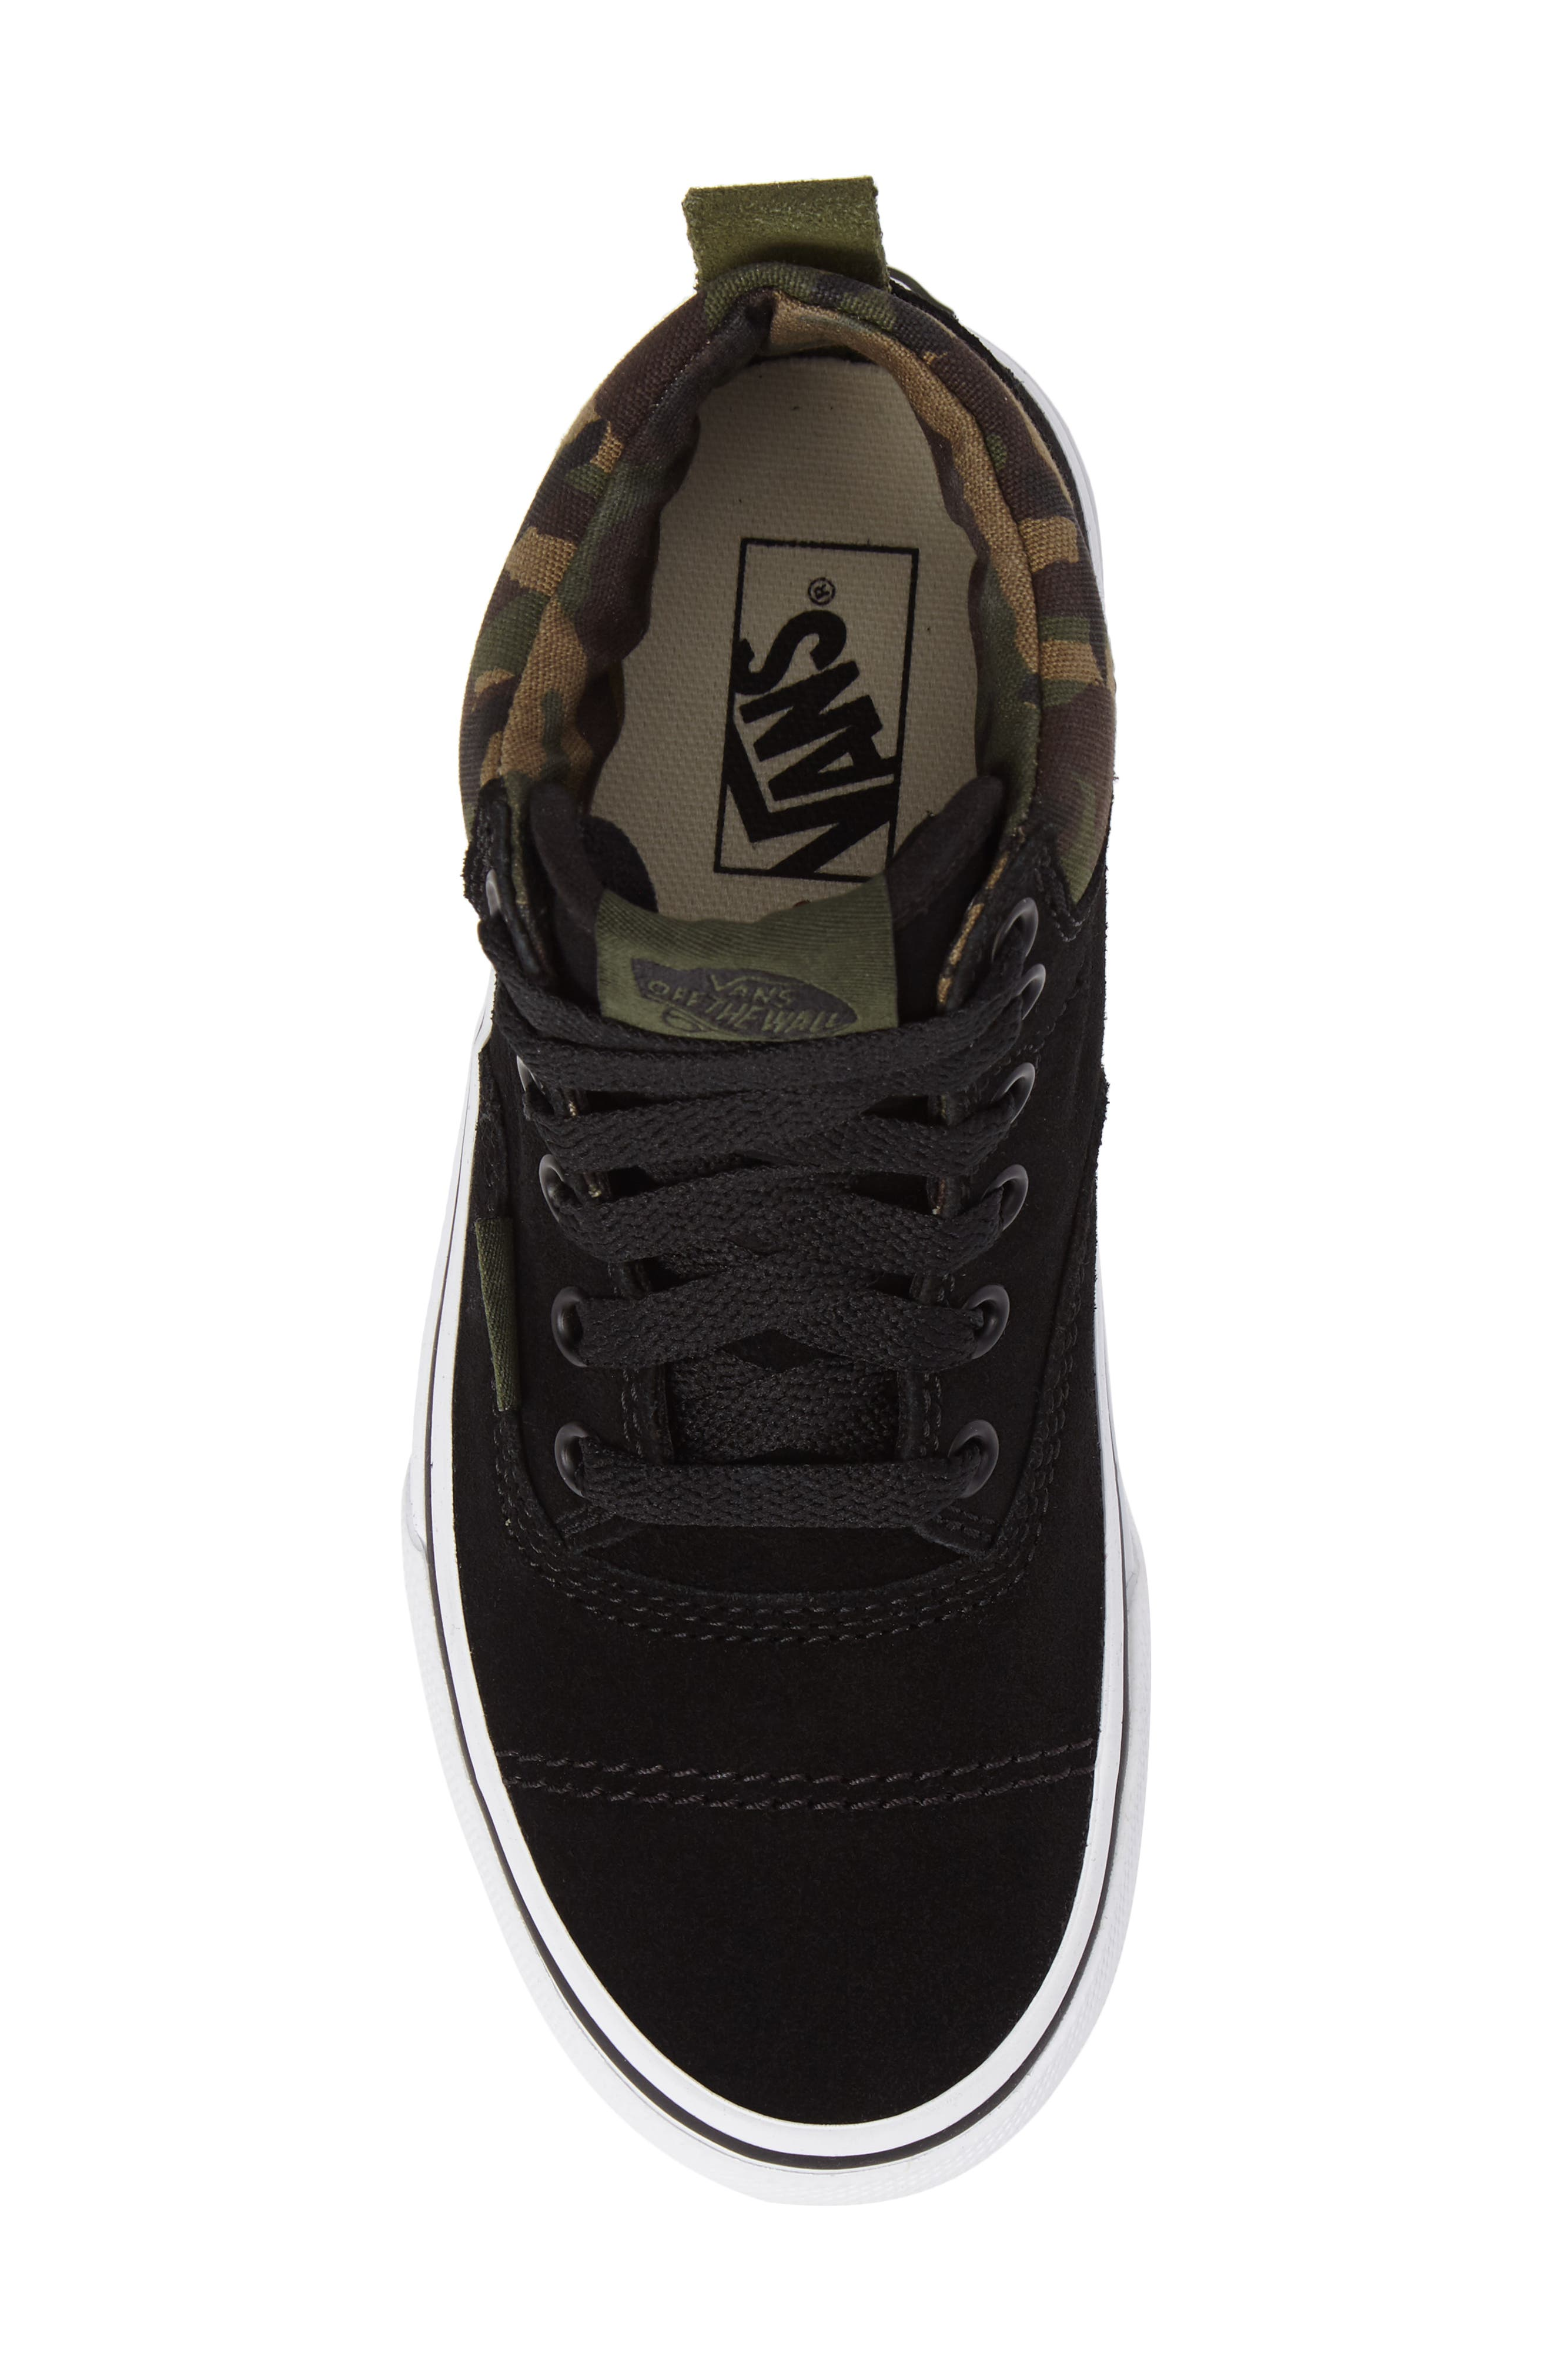 Era - Hi Sneaker,                             Alternate thumbnail 5, color,                             Classic Camo/ Black Suede